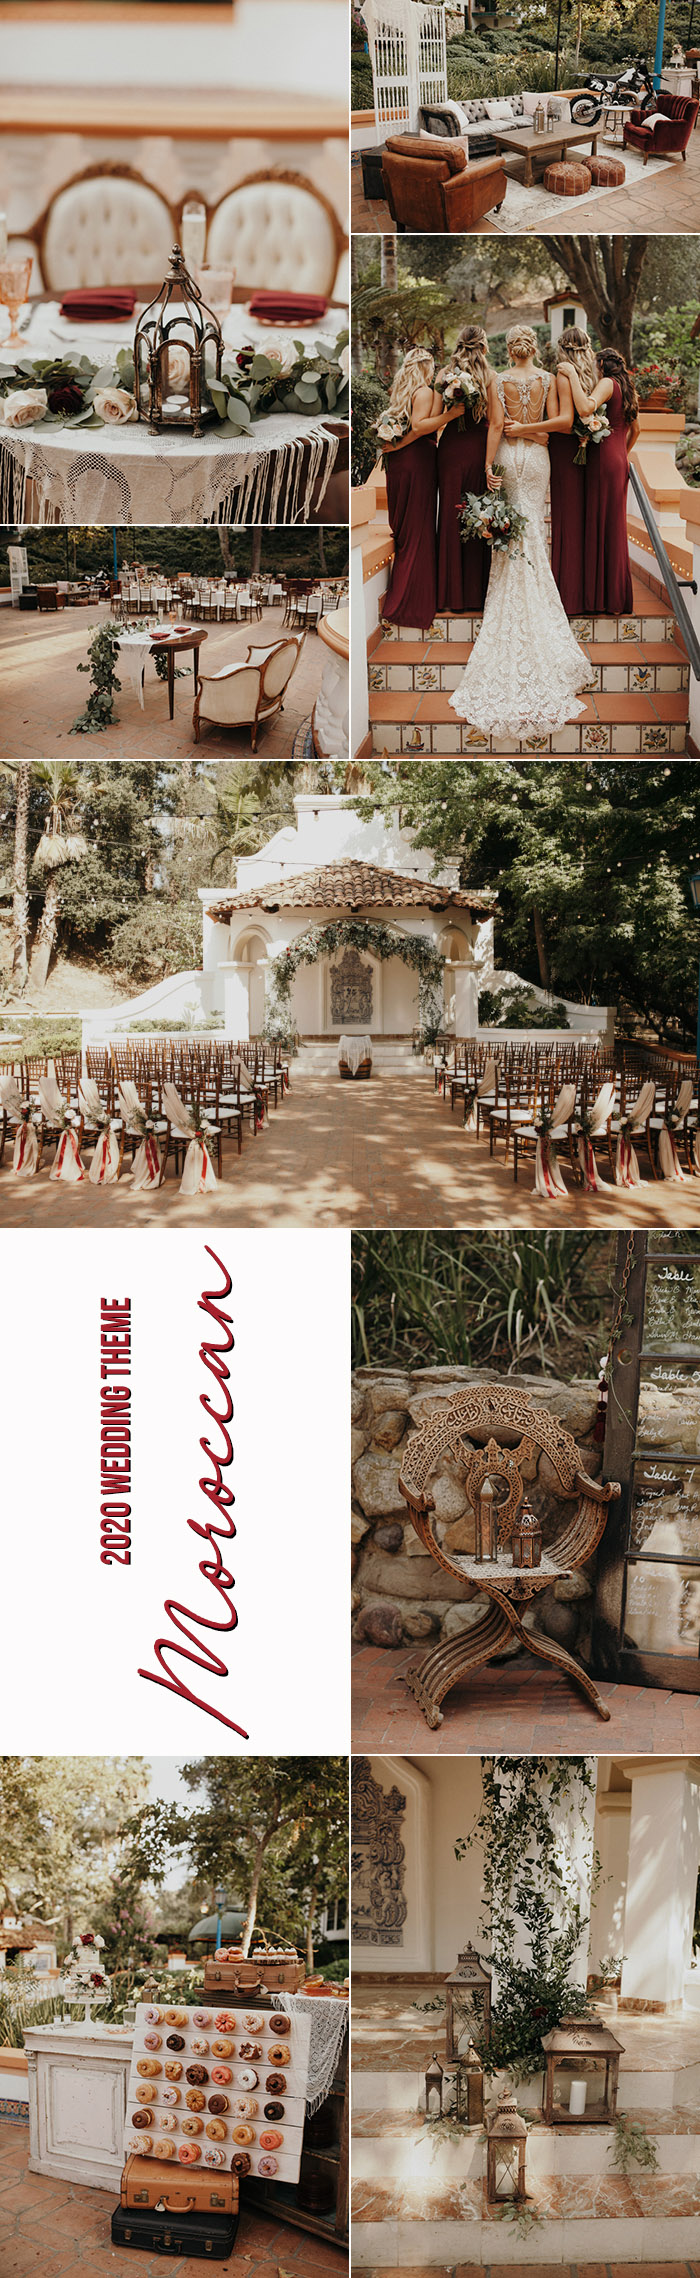 Wedding Themes | Wedding Theme Ideas | Wedding Theme Colors | Wedding Themes  Summer: August 2008